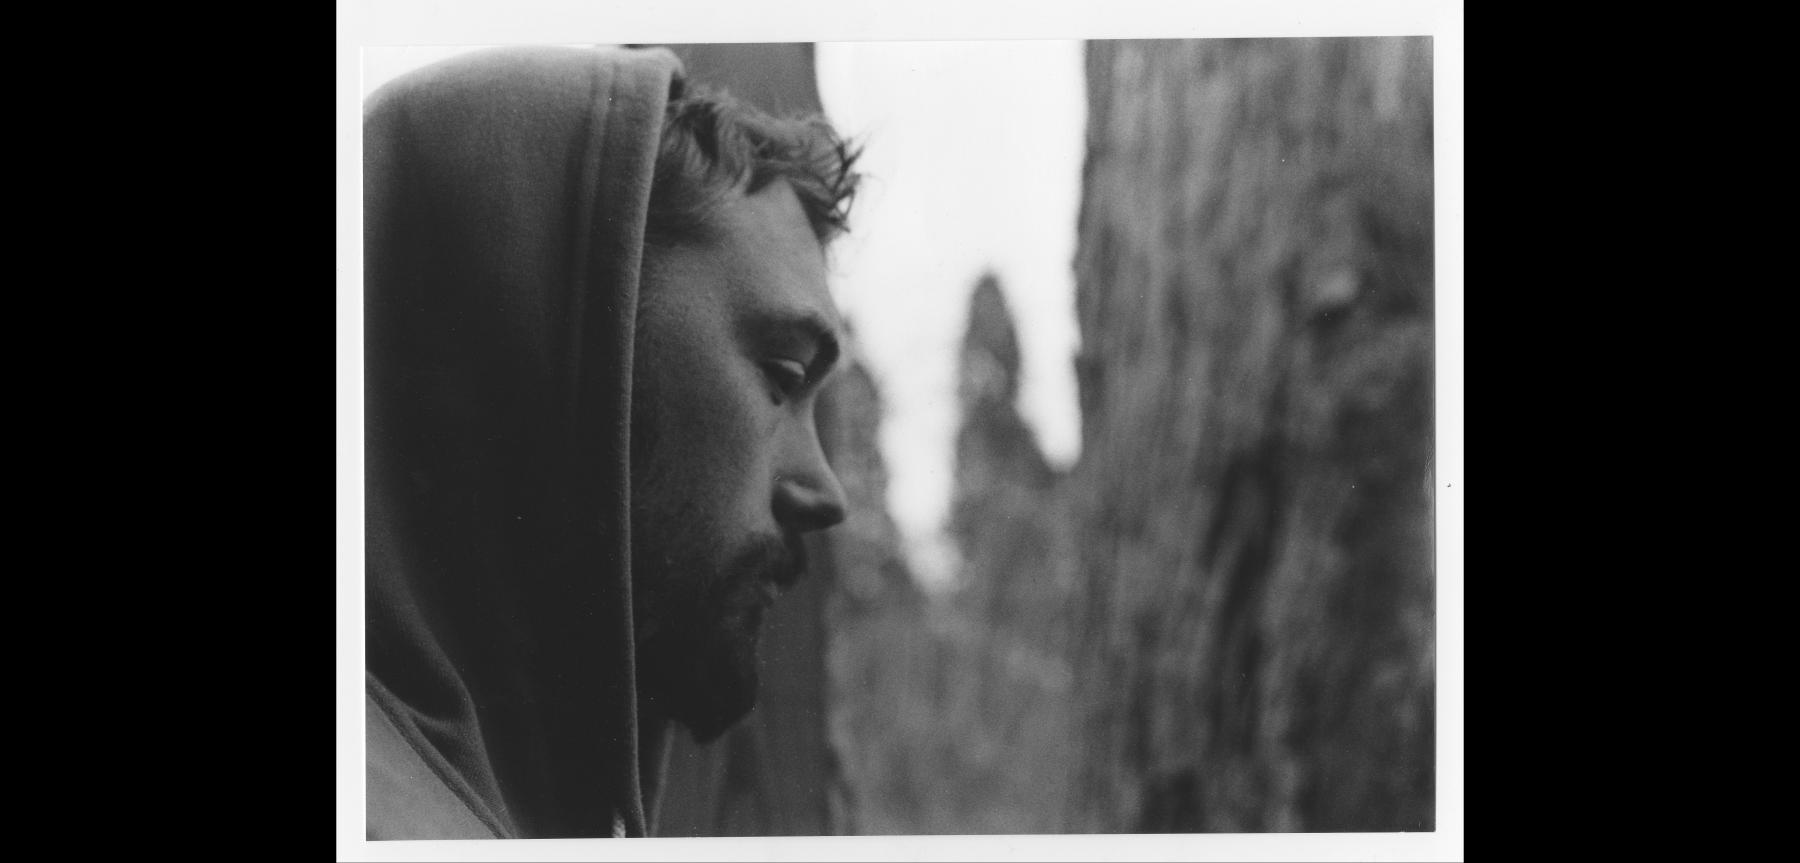 black and white photograph profile of a person in a hoodie